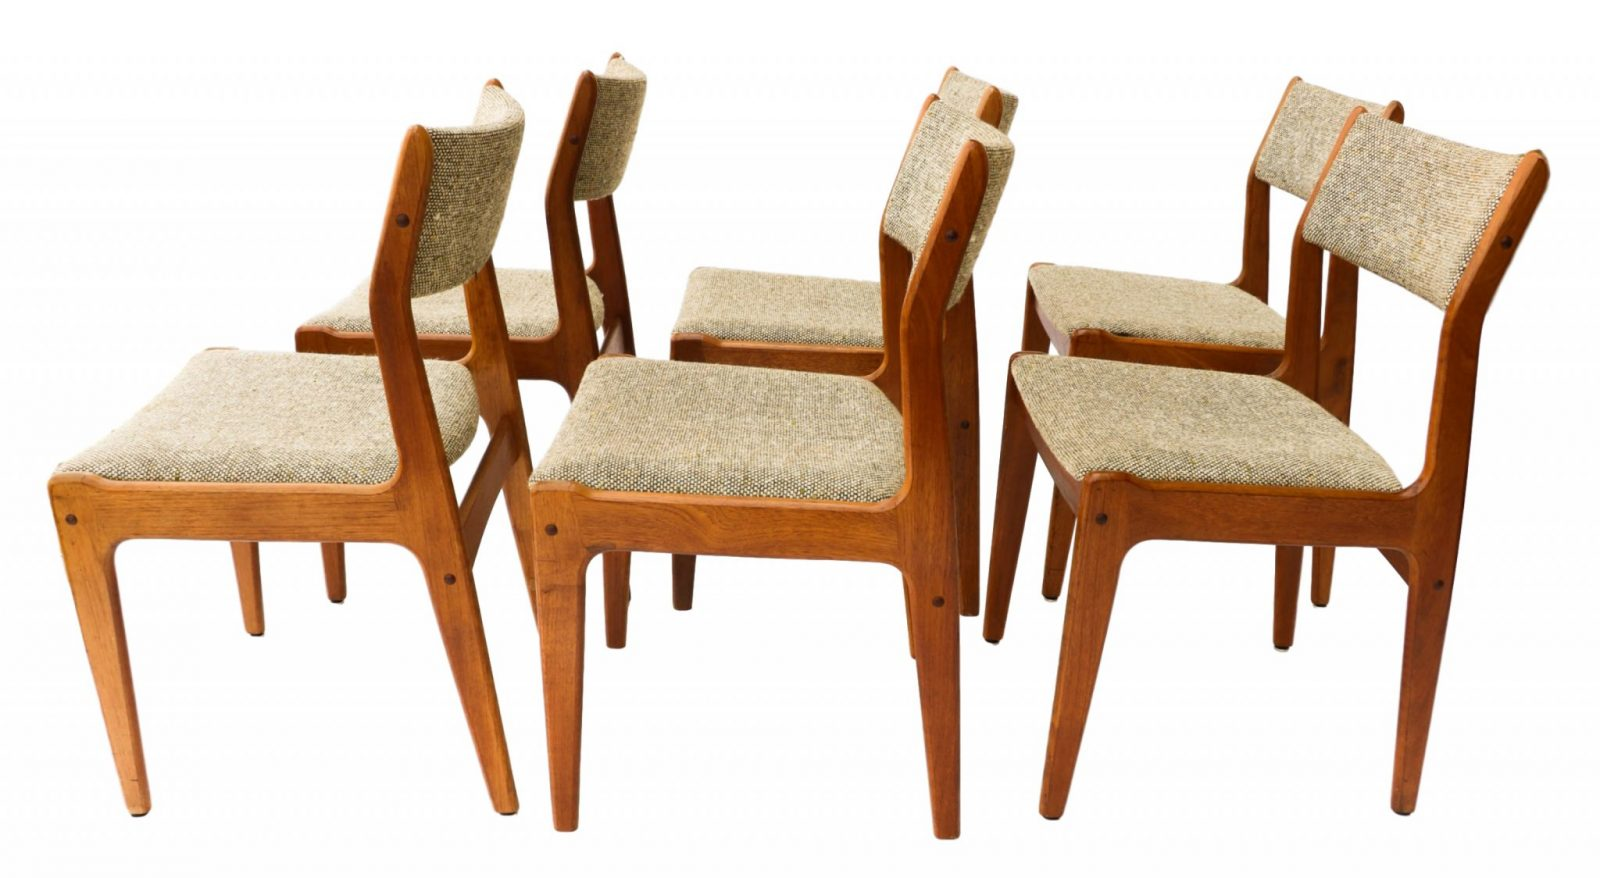 Gorgeous Teak Scandinavia Danish Modern Dining Chairs six : Gorgeous Teak Scandinavia Danish Modern Dining Chairs six 5 from marykaysfurniture.com size 2048 x 1124 jpeg 202kB